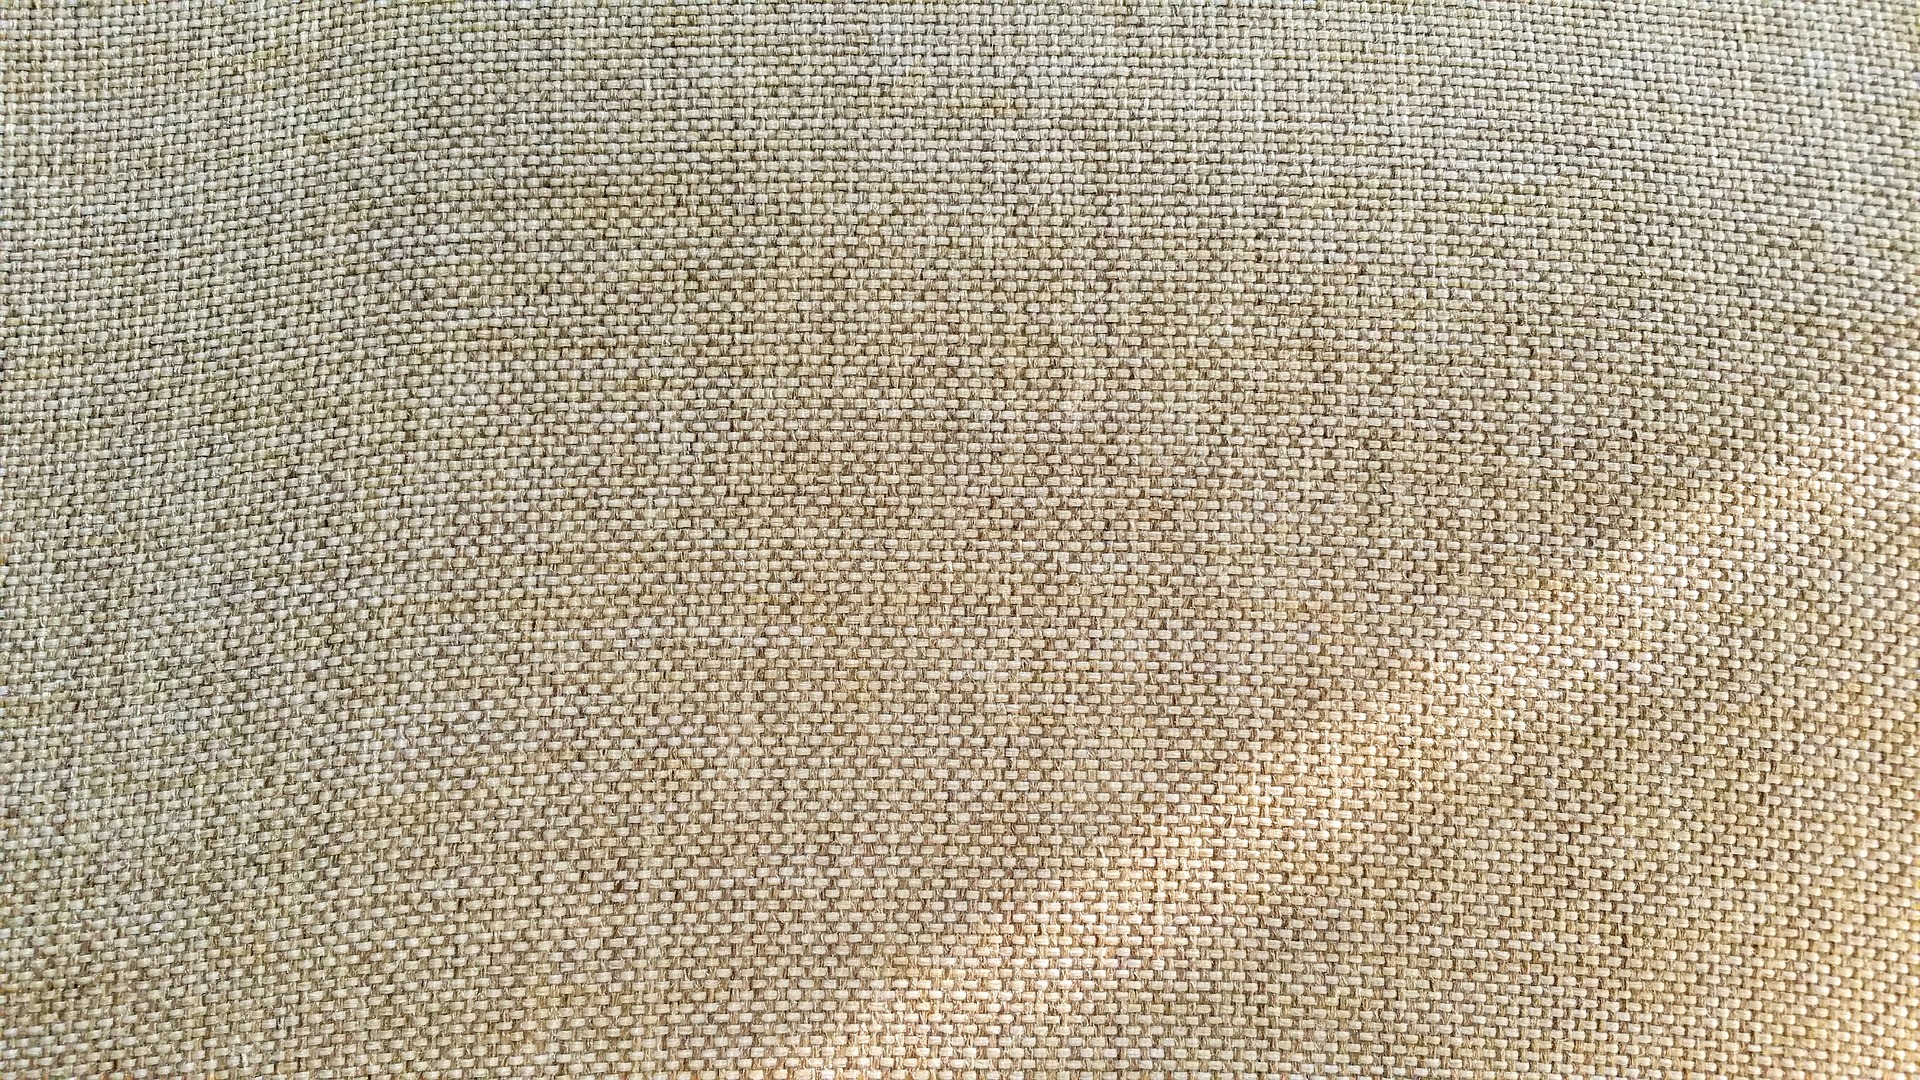 A Short Guide About Jute: Uses/Products, Growing & More